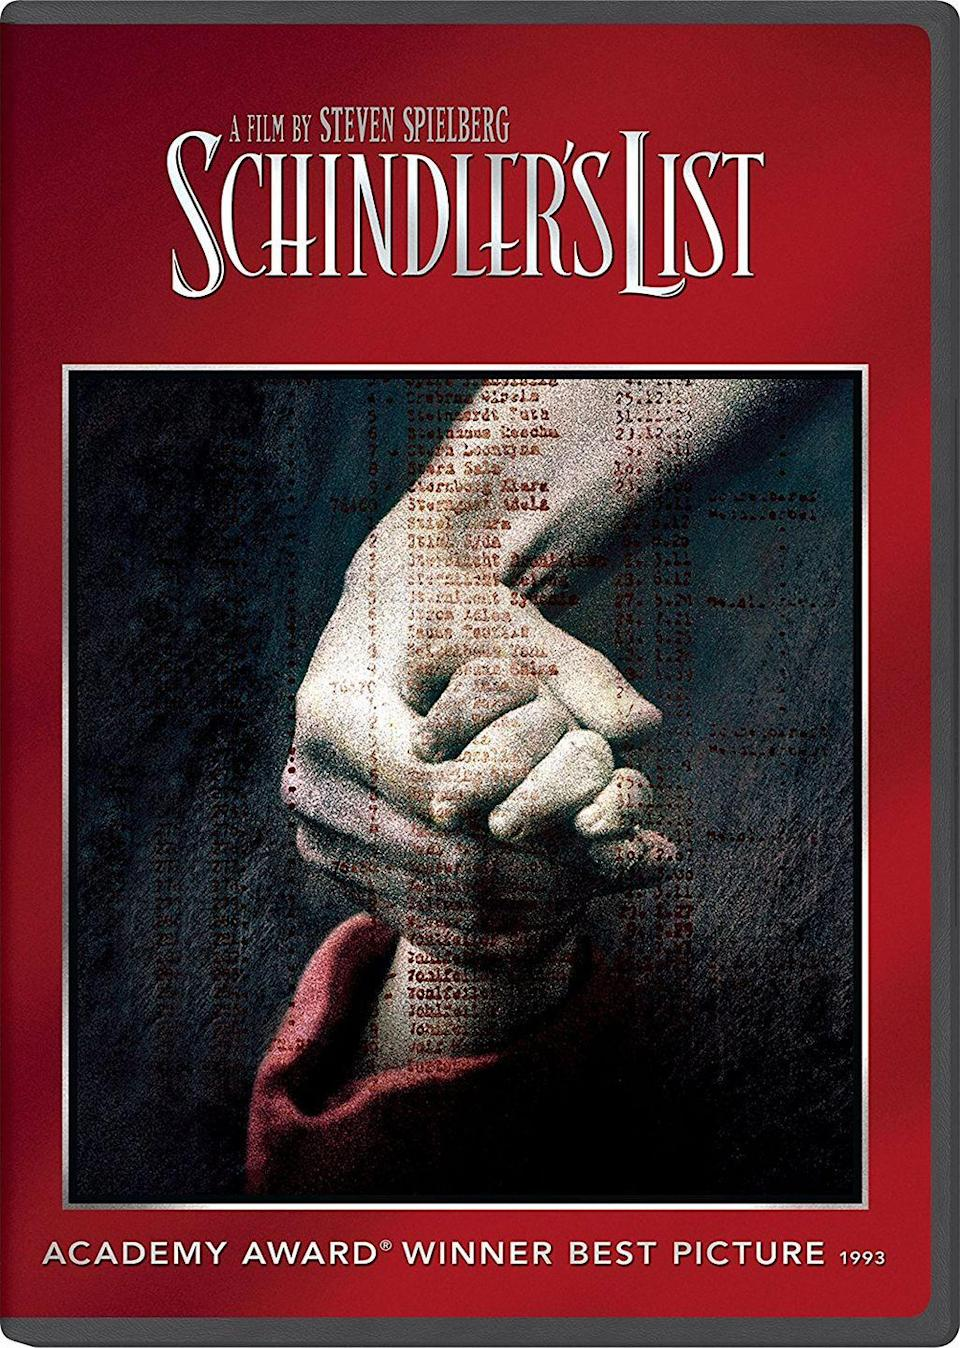 """<p><a class=""""link rapid-noclick-resp"""" href=""""https://www.amazon.com/Schindlers-List-Liam-Neeson/dp/B00B0U2SFE/?tag=syn-yahoo-20&ascsubtag=%5Bartid%7C10067.g.15907978%5Bsrc%7Cyahoo-us"""" rel=""""nofollow noopener"""" target=""""_blank"""" data-ylk=""""slk:Watch Now"""">Watch Now</a> </p><p>Businessman and Nazi party member Oskar Schindler works to save innocent lives and protect the Jewish workers that staff his factory during World War II.<br></p>"""